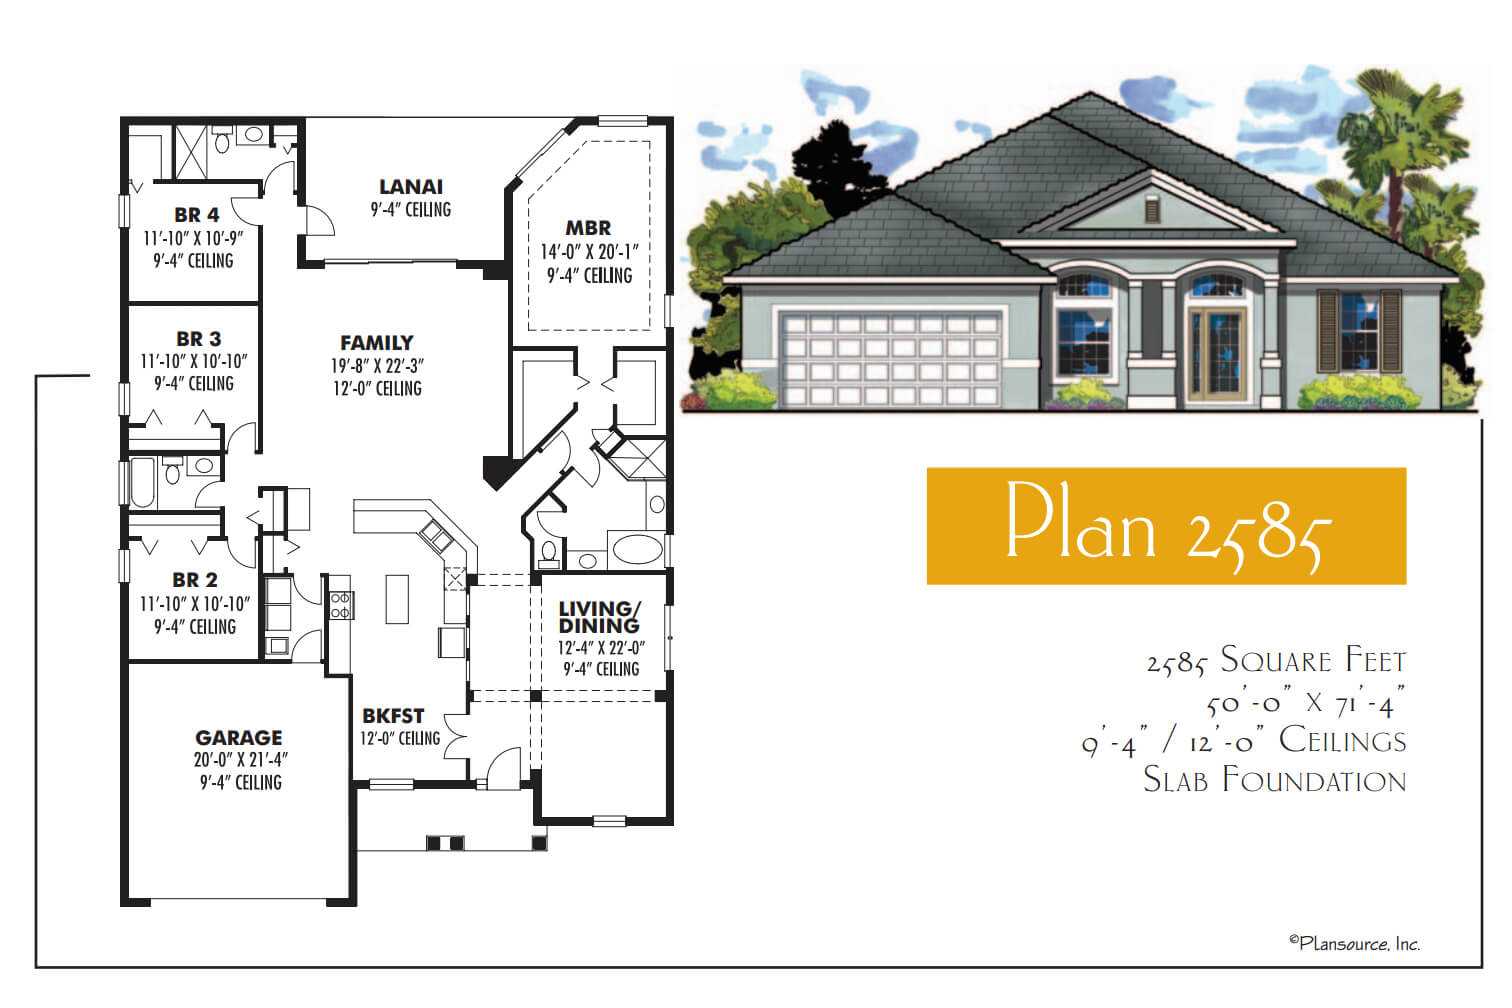 Floor Plans,2,501 SQ FT TO 3,000 SQ FT,1056